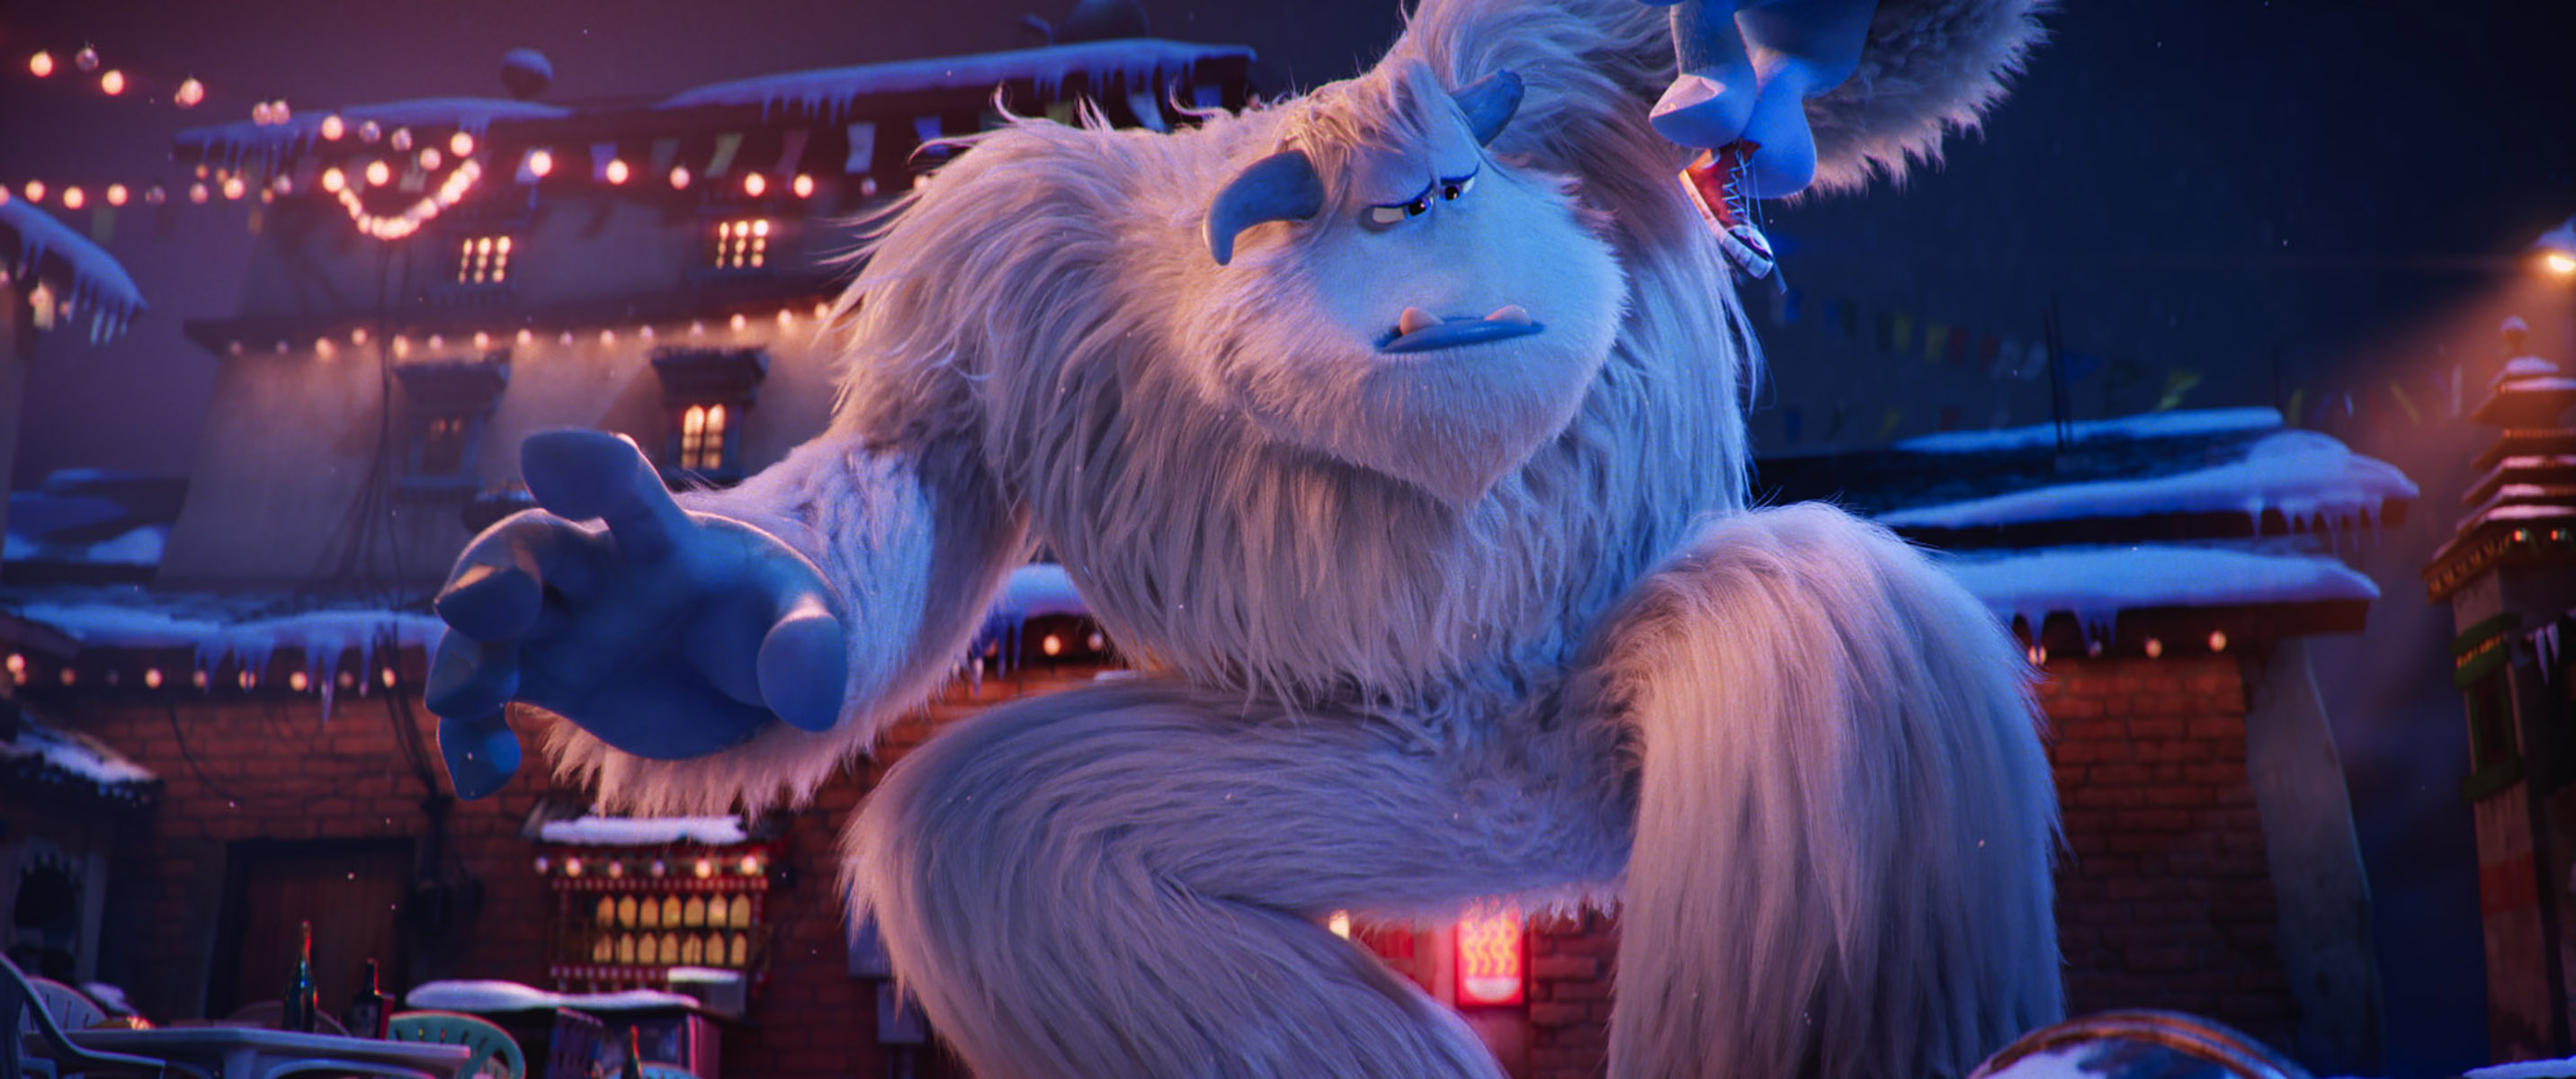 Smallfoot Gallery 21